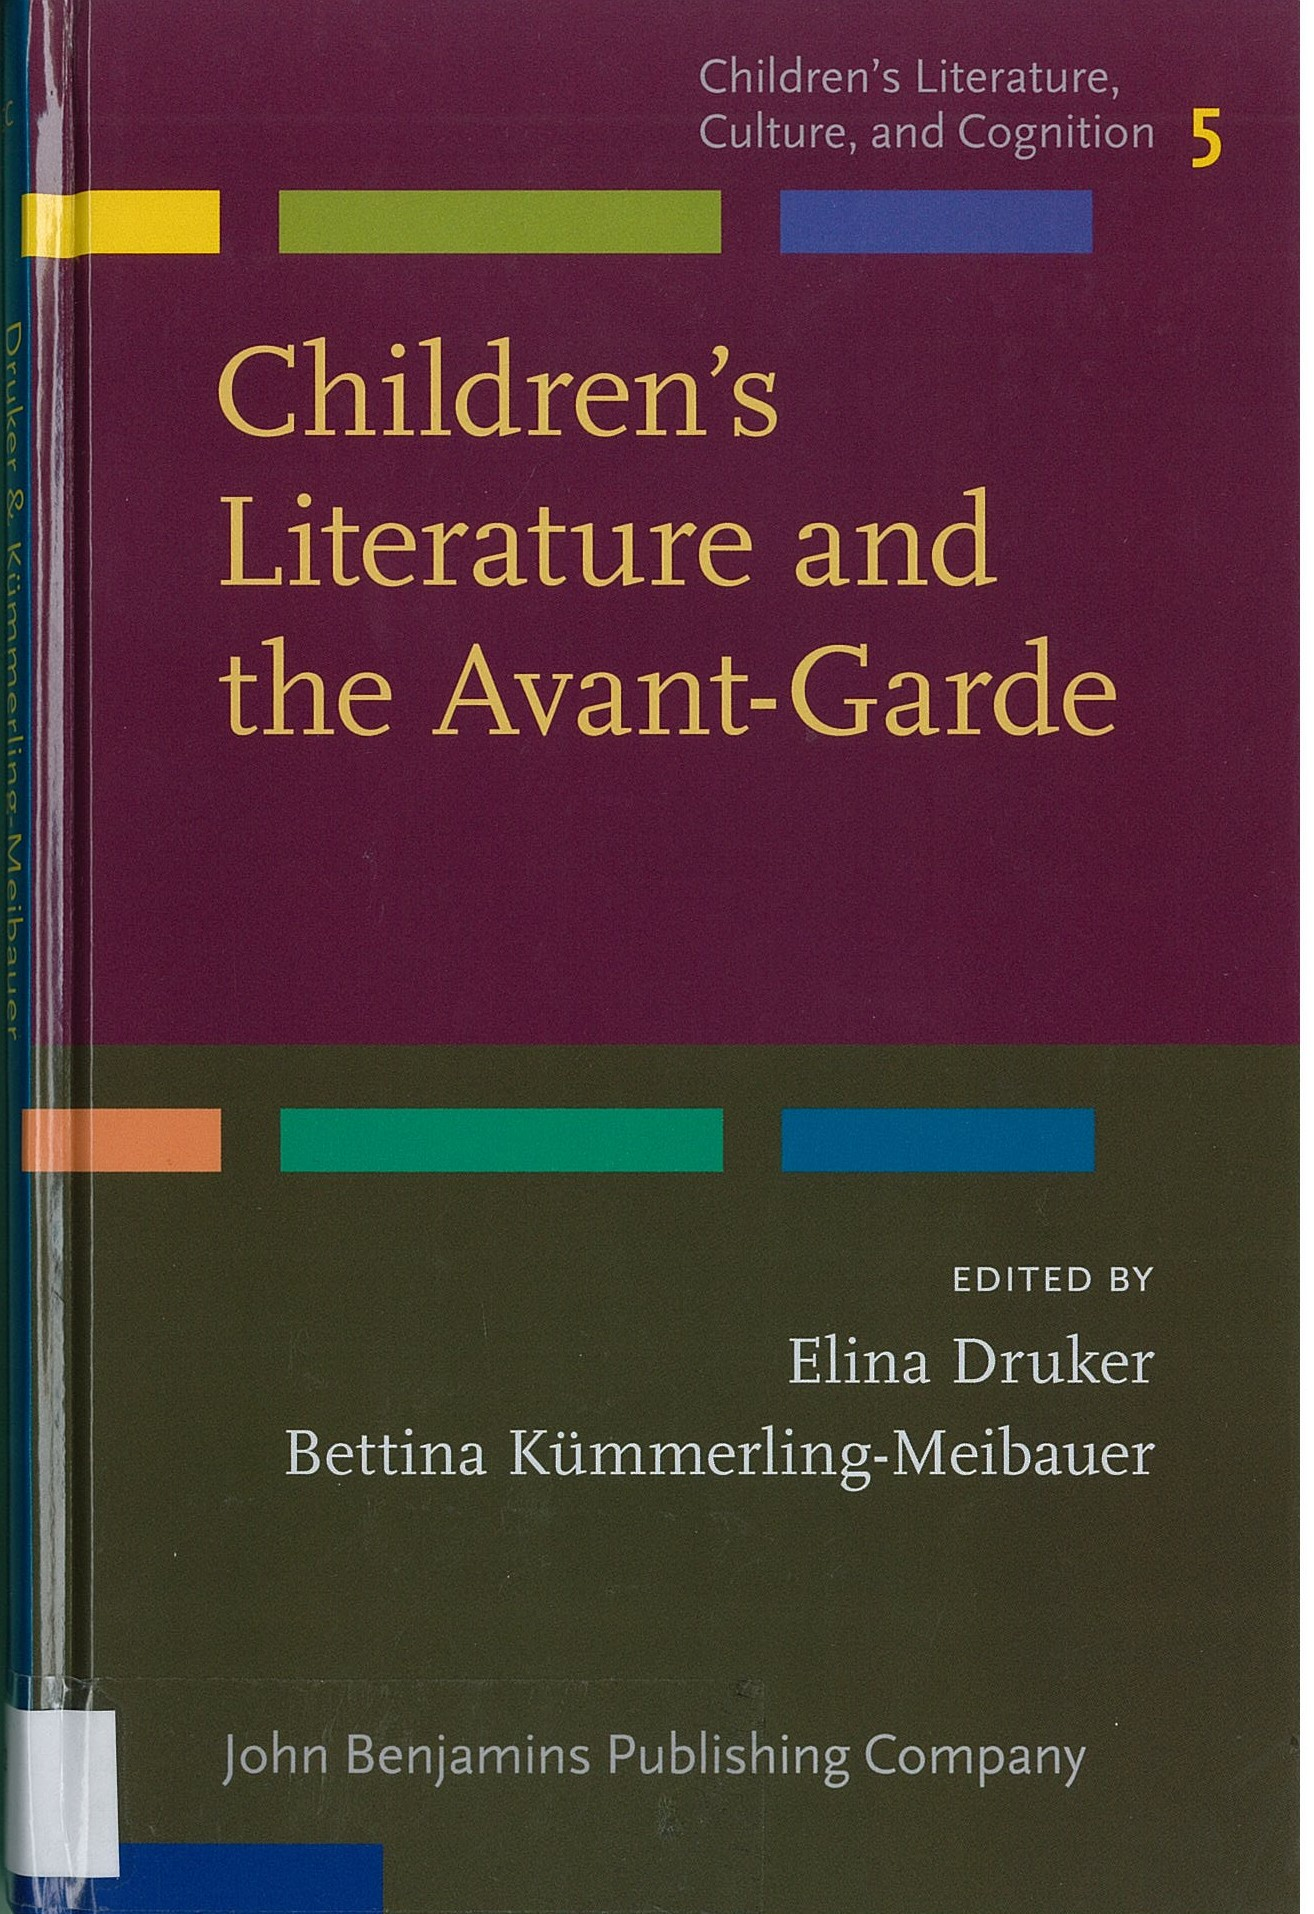 Children's Literature and the Avant-Garde